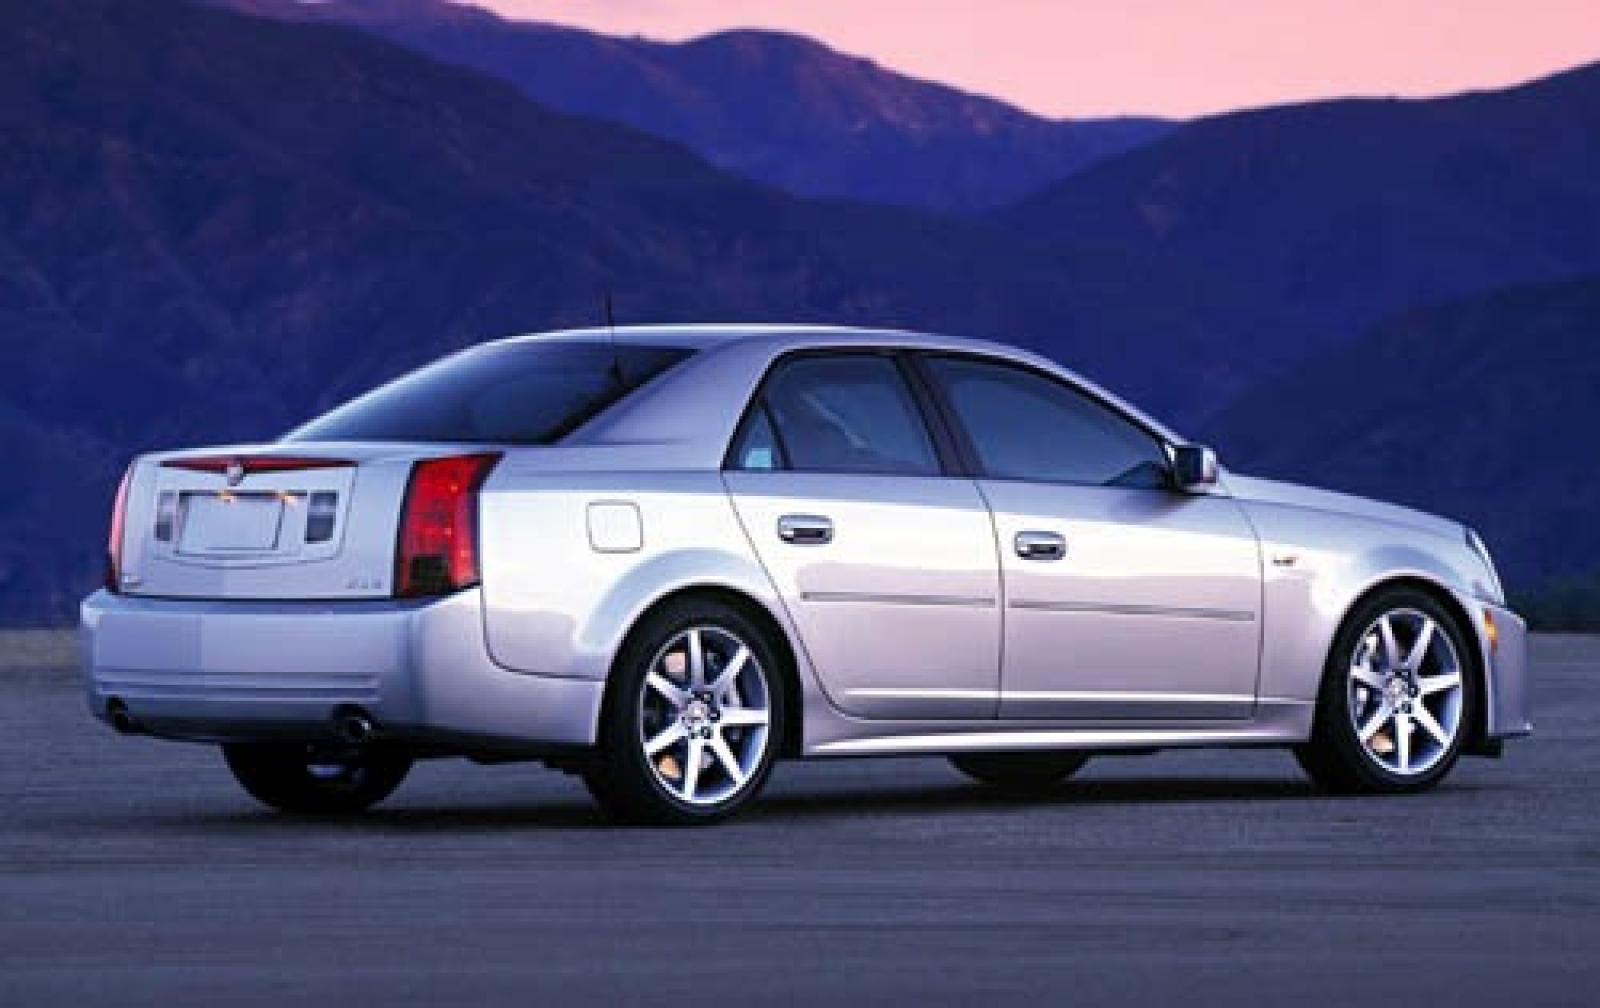 2004 cadillac cts v information and photos zombiedrive. Black Bedroom Furniture Sets. Home Design Ideas